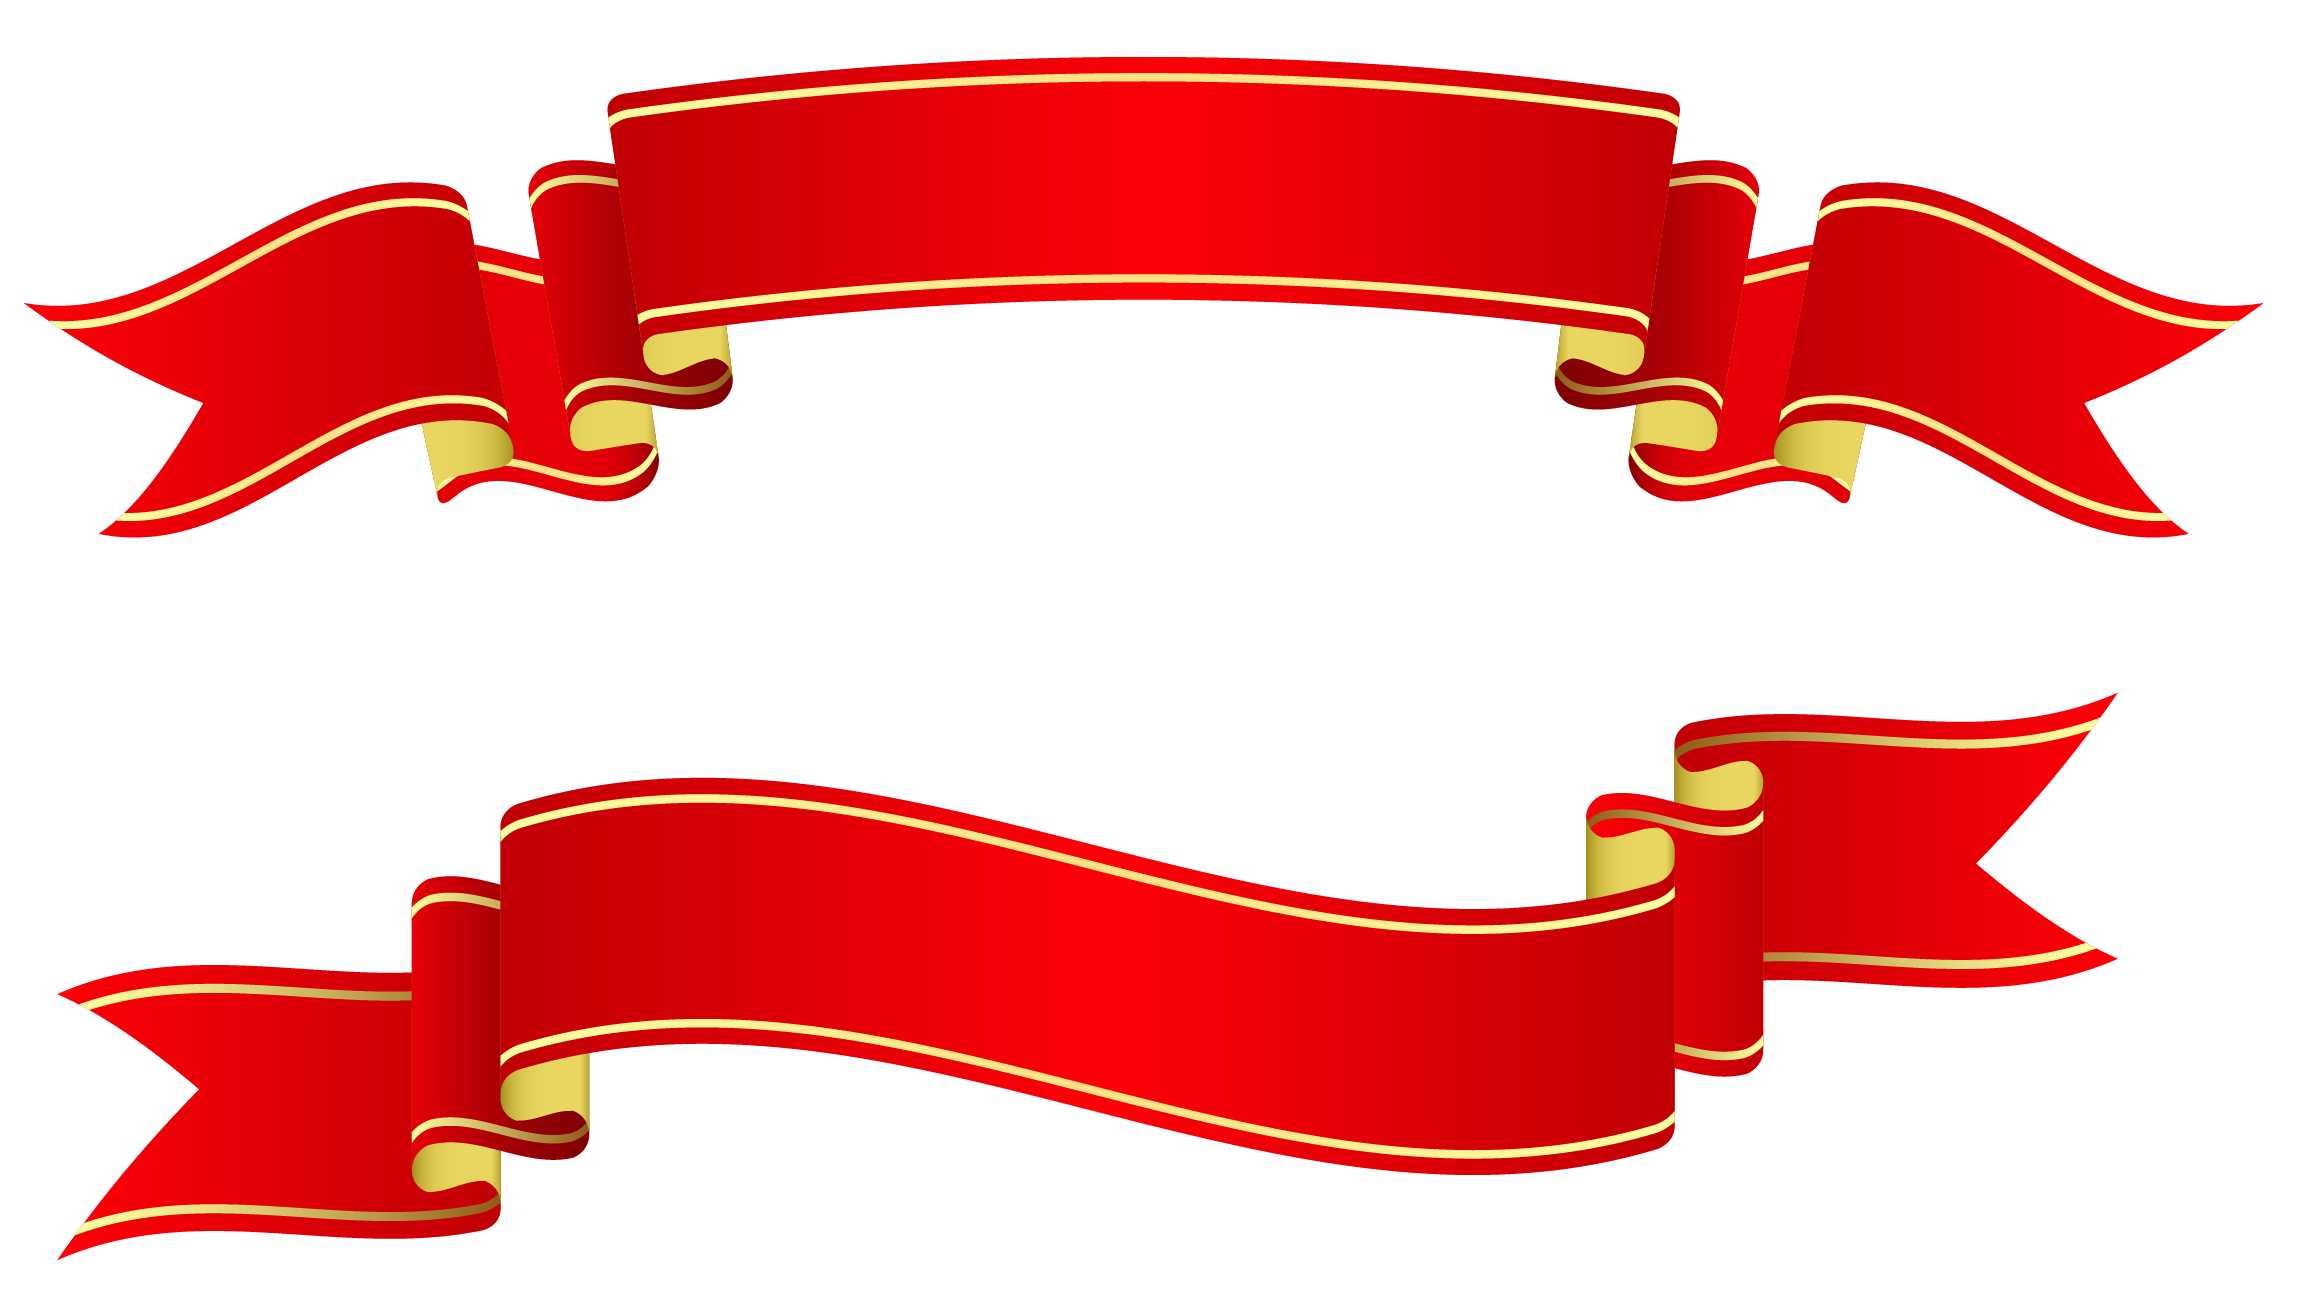 Ribbon banner clip art png. Red banners clipart picture